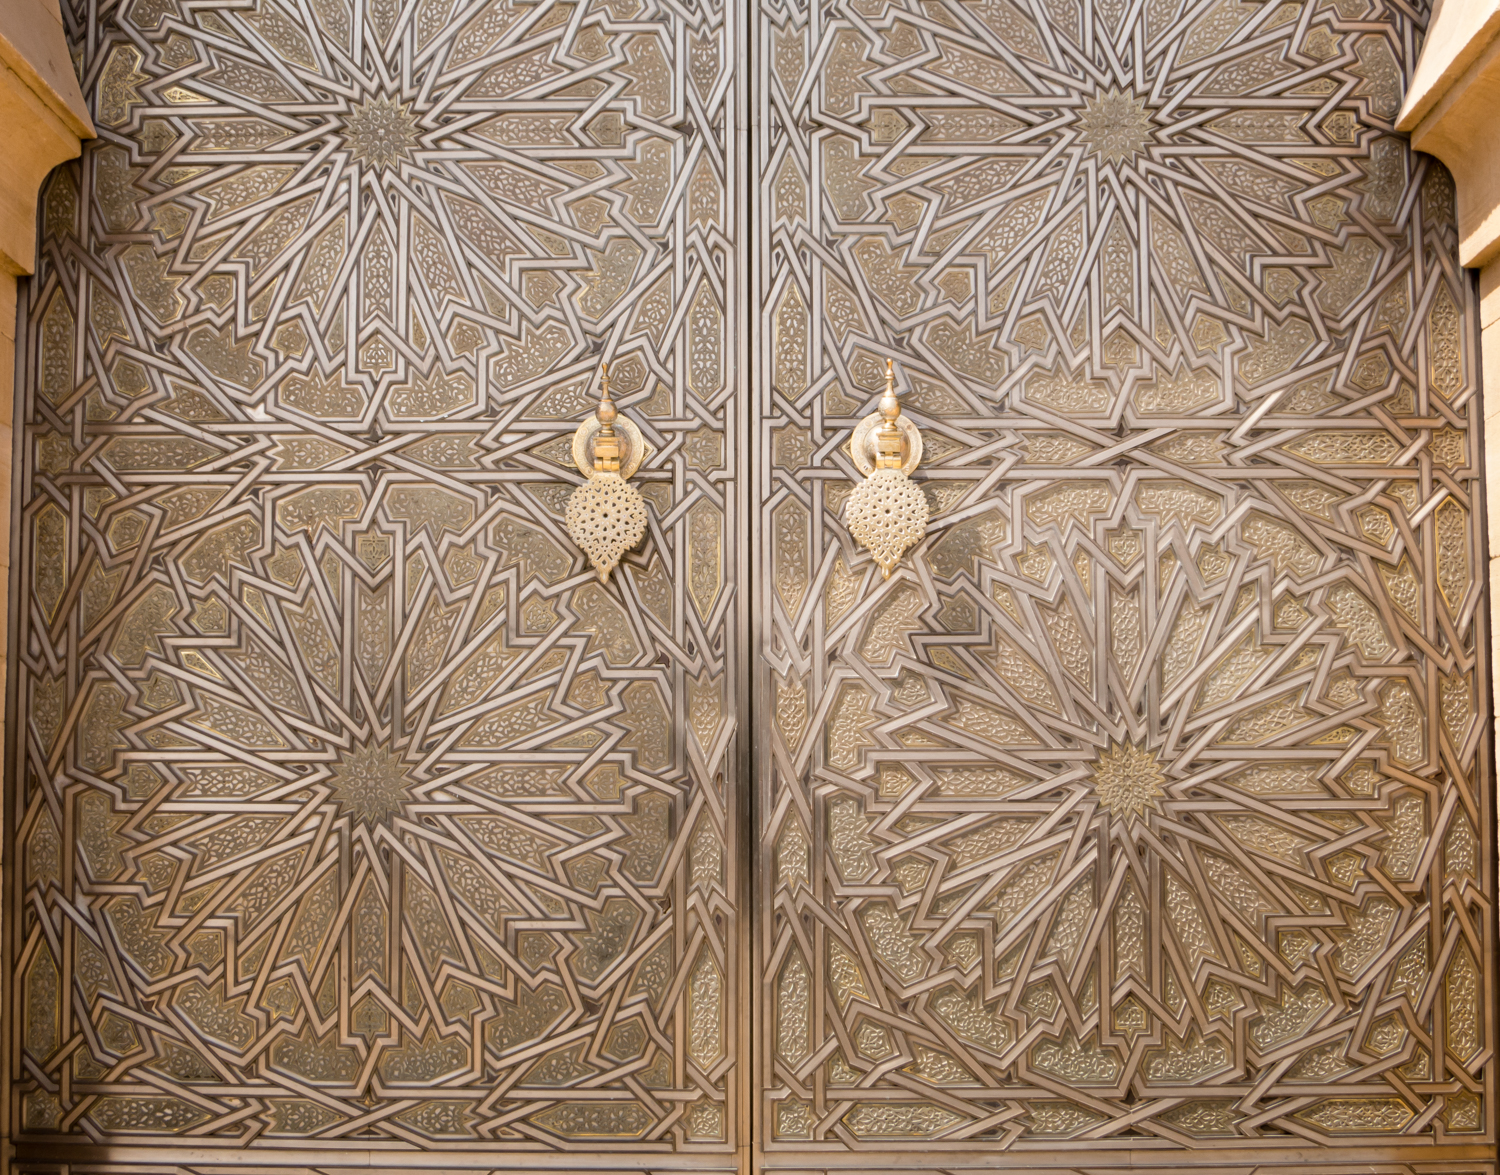 Bronze doors at the ceremonial entrance to Palais Royal (Royal Palace) Casablanca & Palais Royal (Royal Palace) Casablanca Morocco | Where in the ...